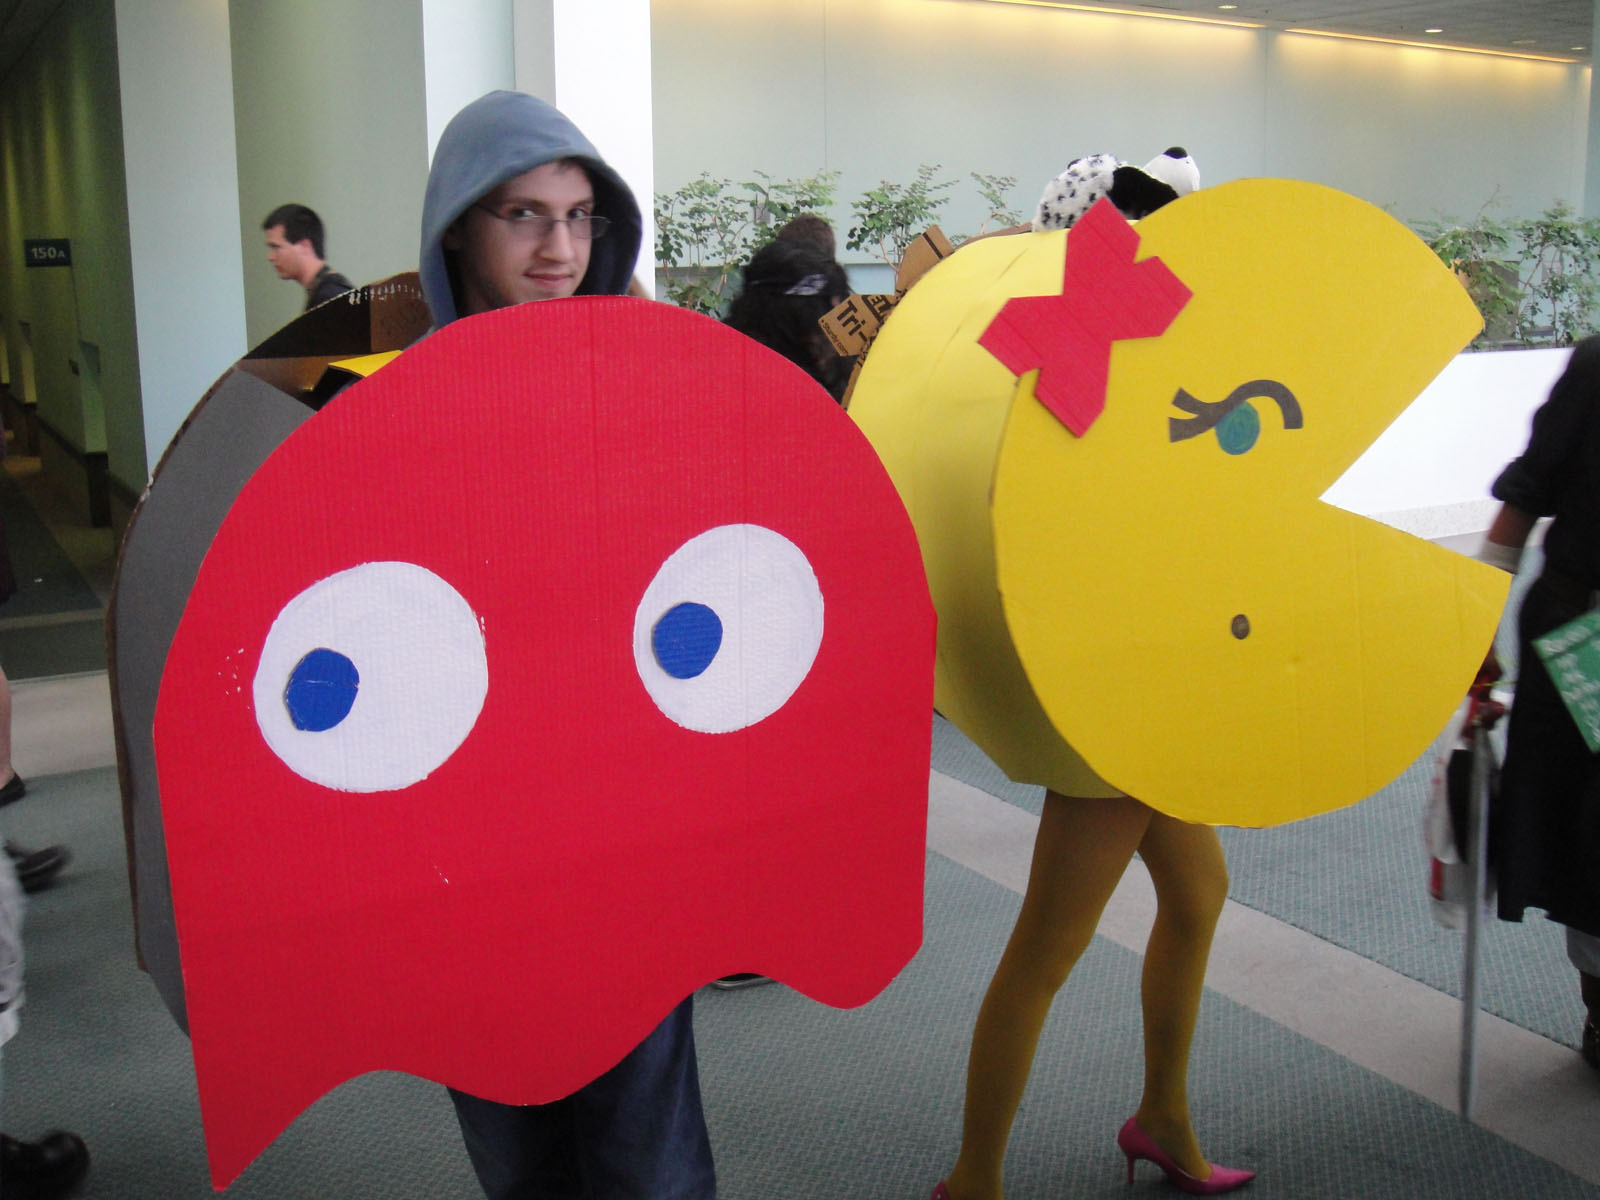 FileAnime Expo 2010 - LA - Ms Pac-Man and ghost (4836635185  sc 1 st  Wikimedia Commons & File:Anime Expo 2010 - LA - Ms Pac-Man and ghost (4836635185).jpg ...